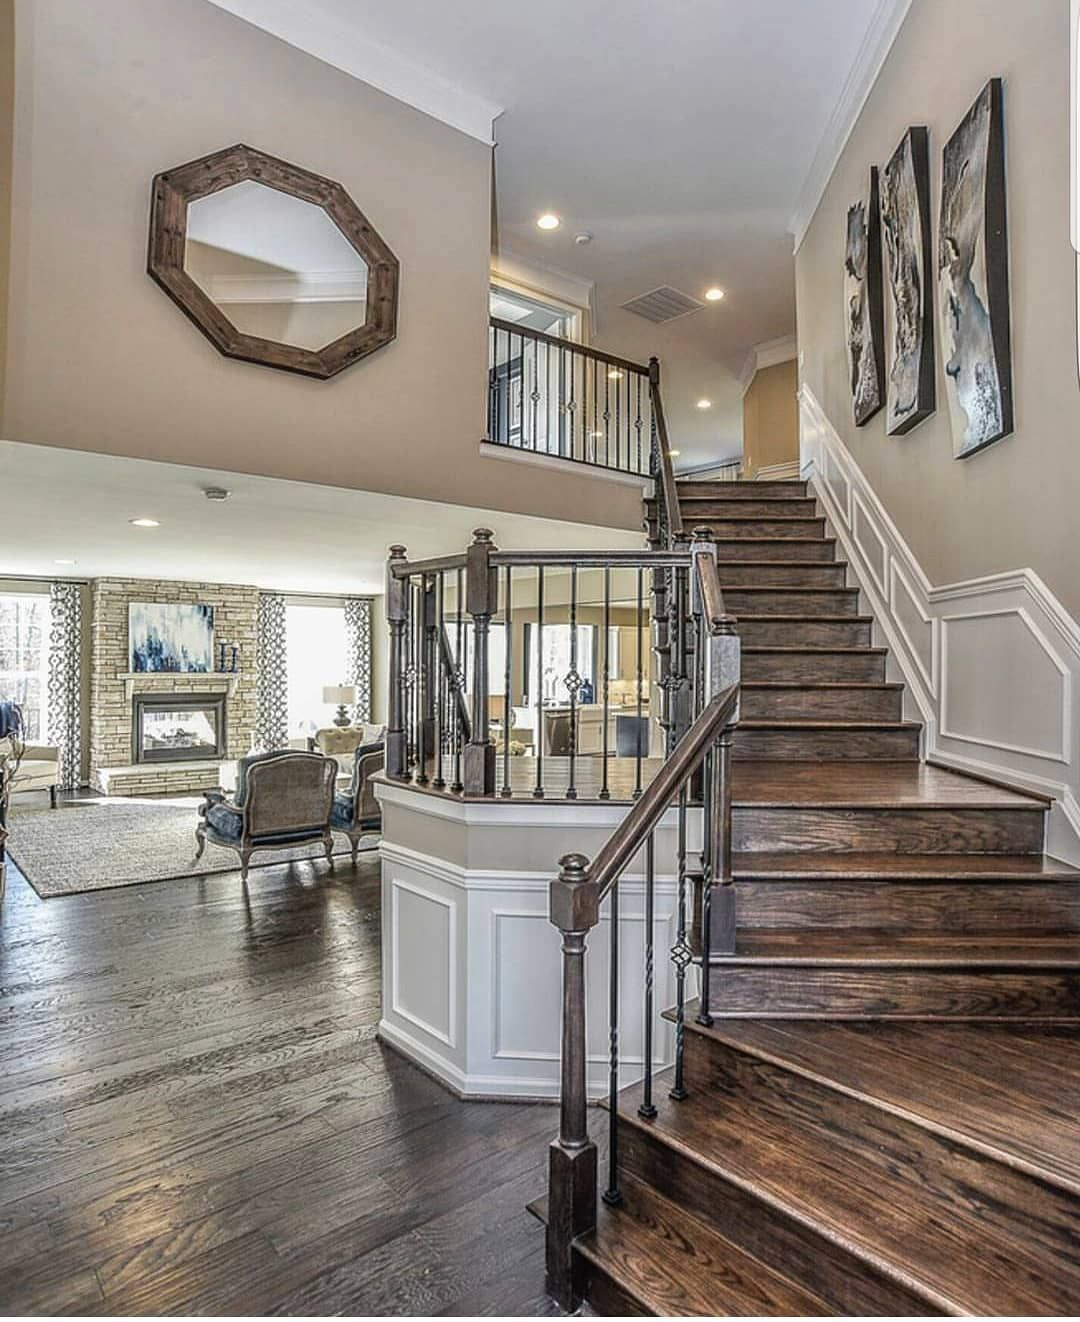 Which foyer do you like the most, 1 or 2? .